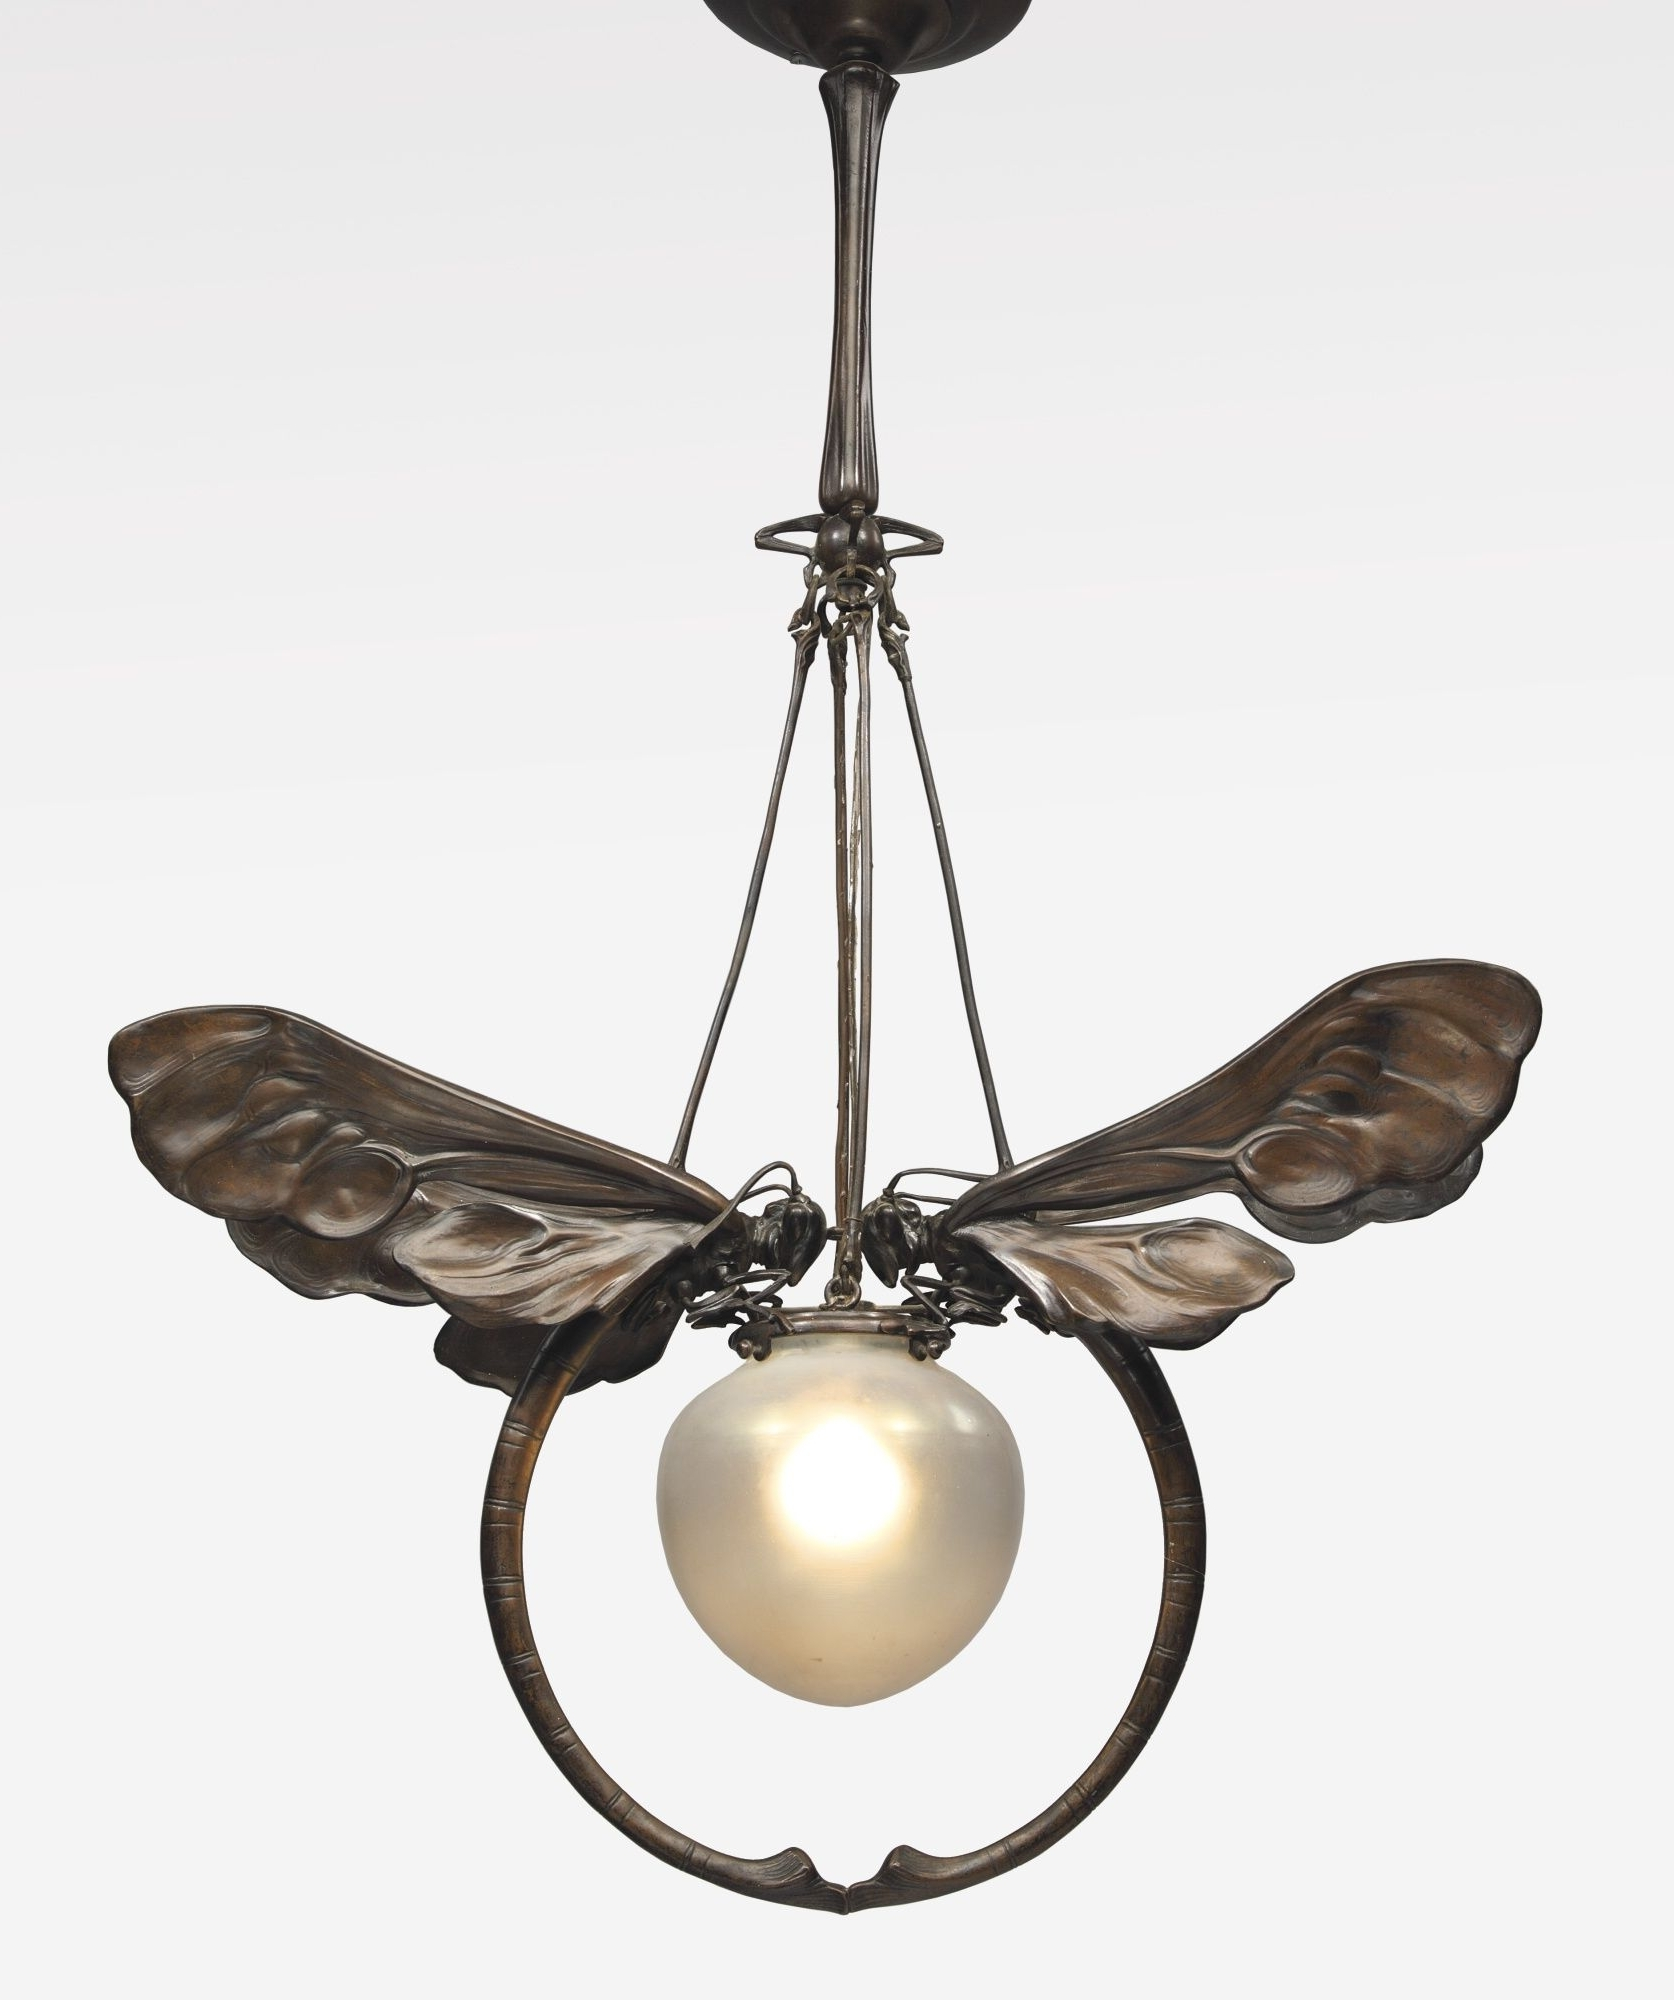 Art Deco Chandelier Regarding Fashionable European Art Nouveau Chandelier Patinated Bronze And Glass (View 3 of 20)